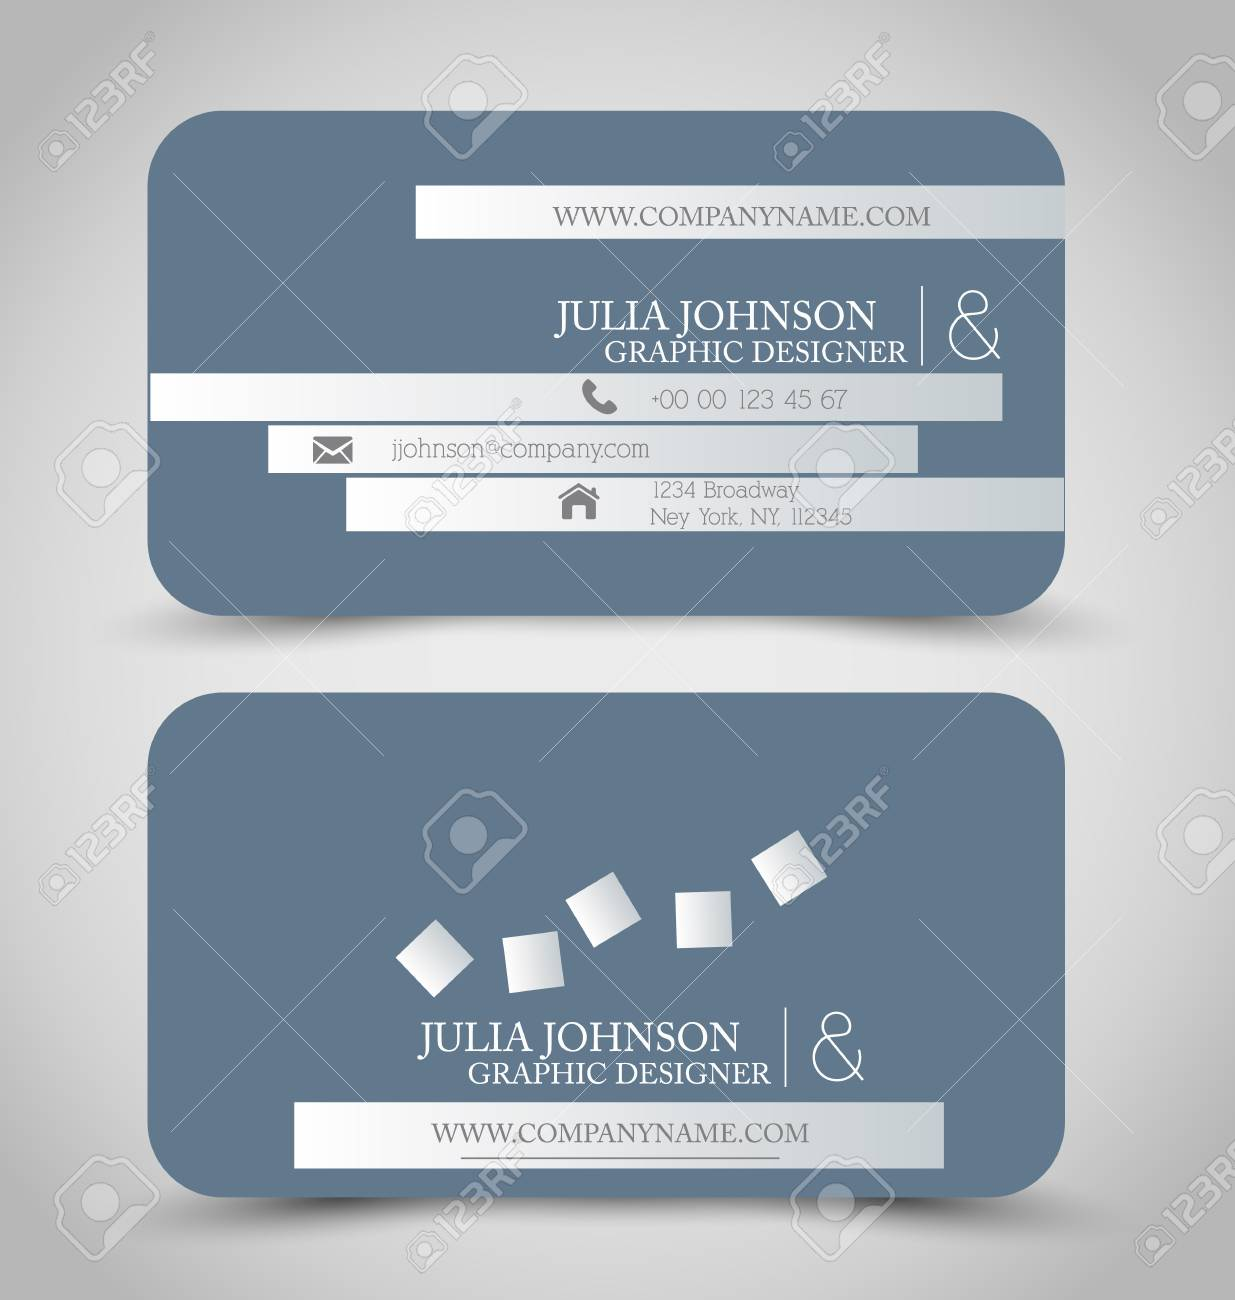 Business card set template for business identity corporate style business card set template for business identity corporate style grey color vector illustration colourmoves